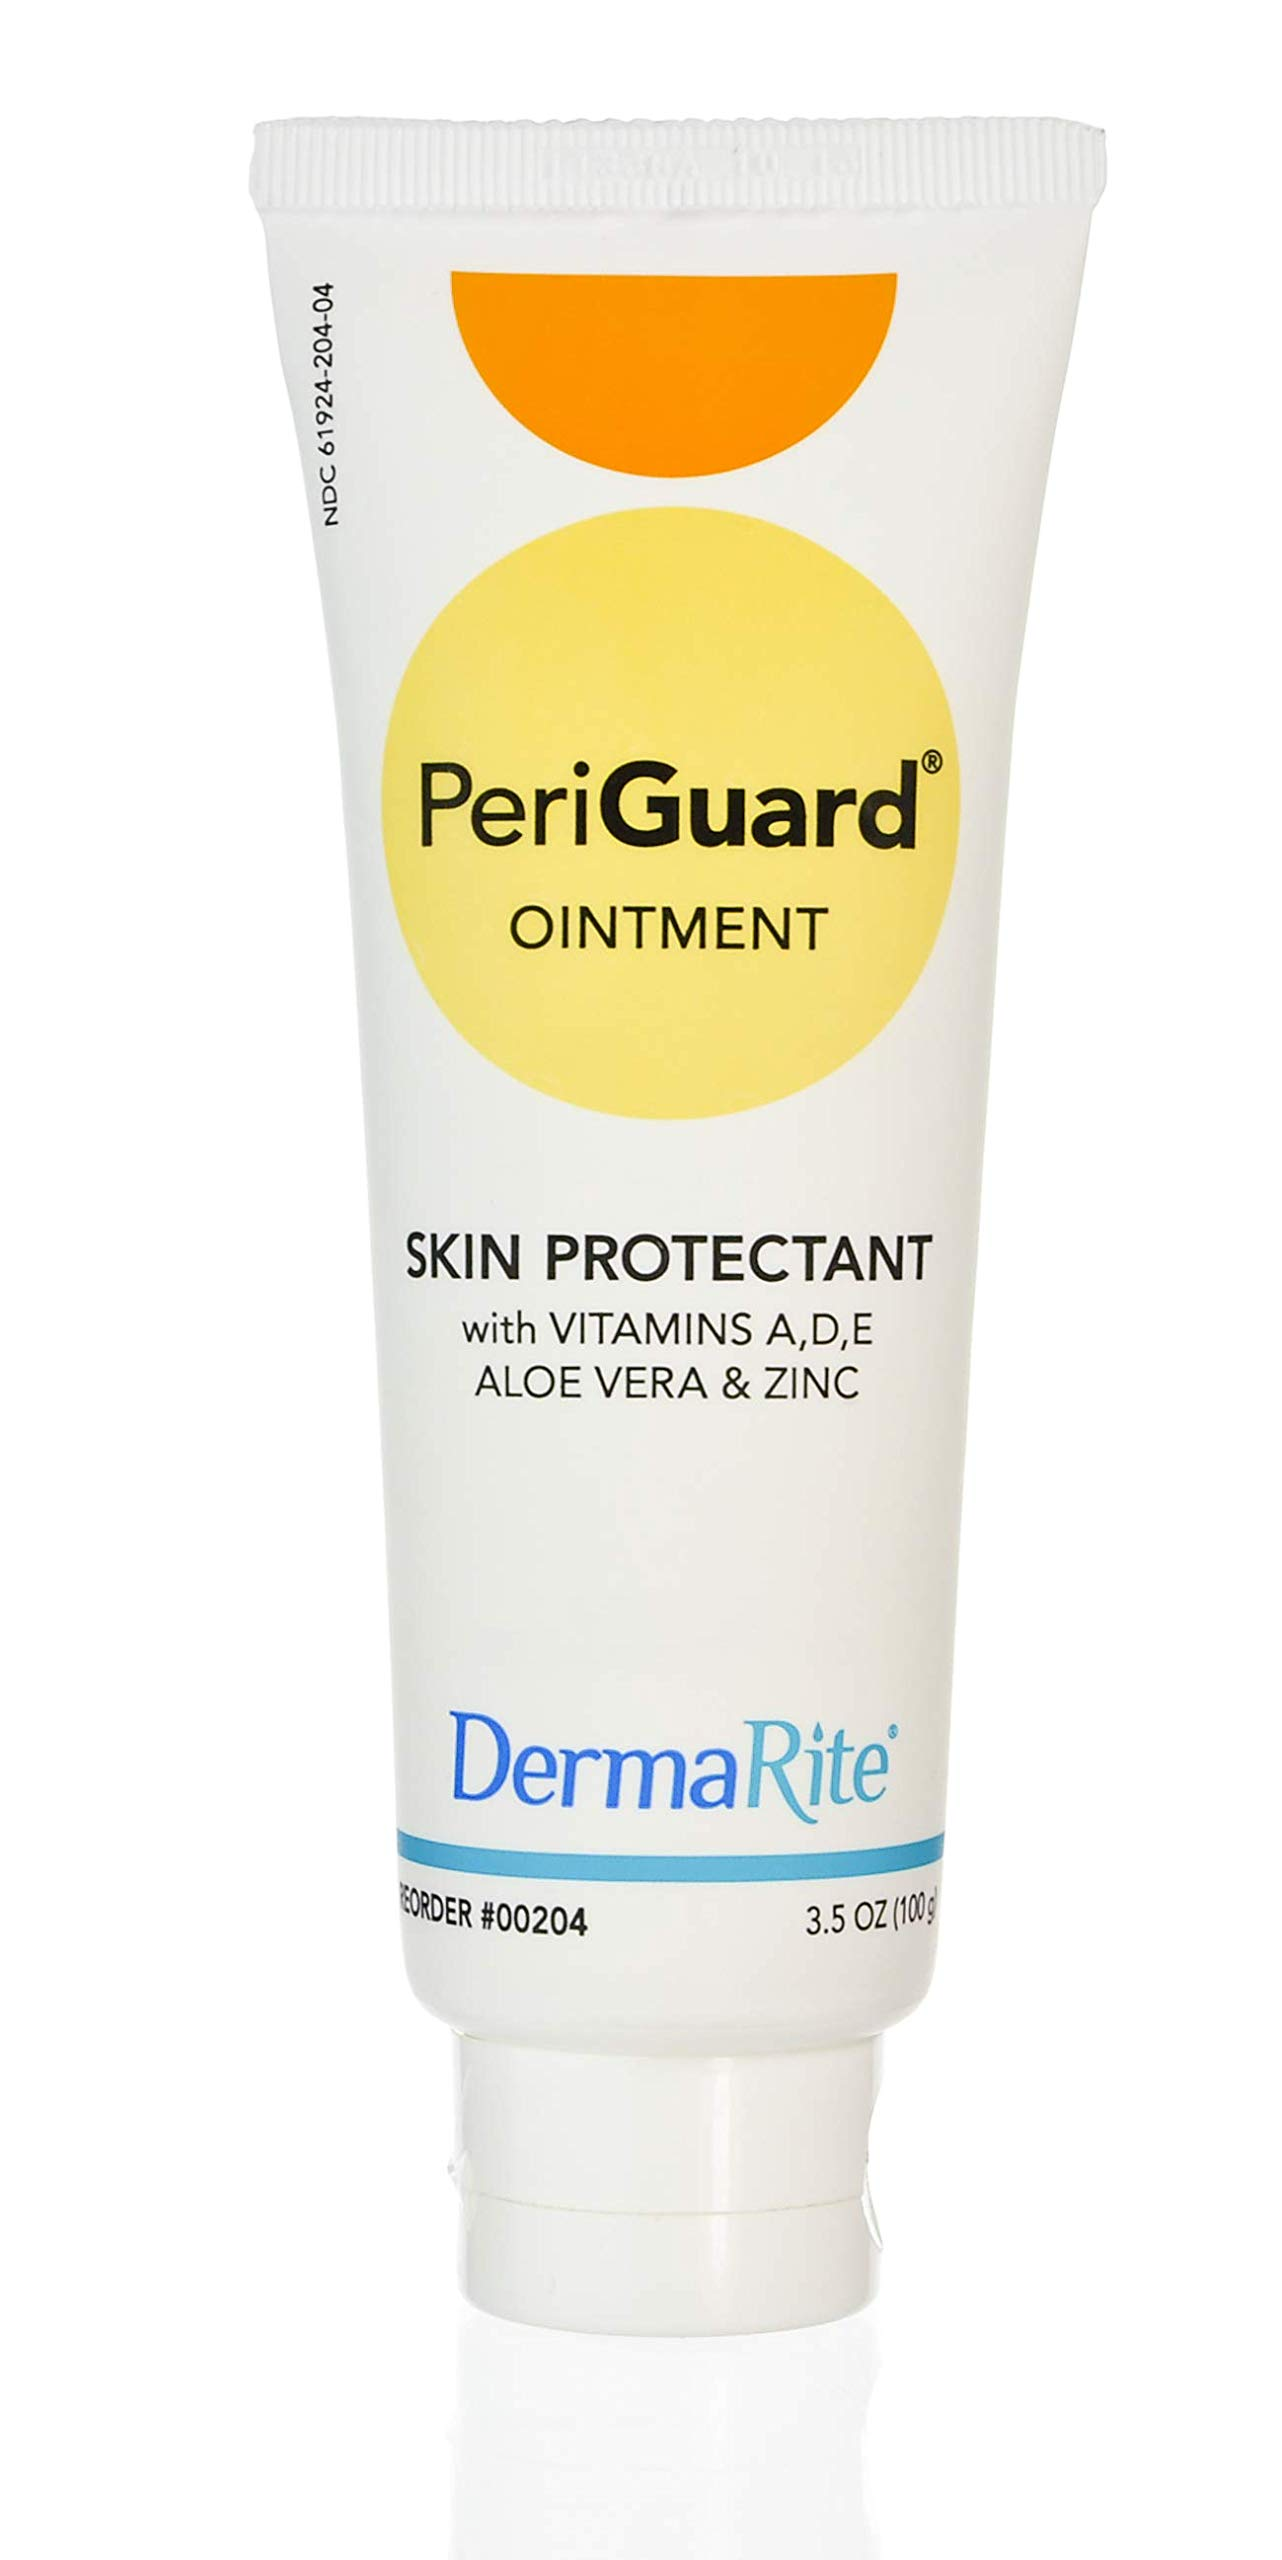 Dermarite PeriGuard Antimicrobial Skin Protectant Ointment, 24 Case Pack - 3.5 oz Tube - with Vitamins A, D, E, Aloe Vera and Zinc - Clear Moisture Barrier Cream